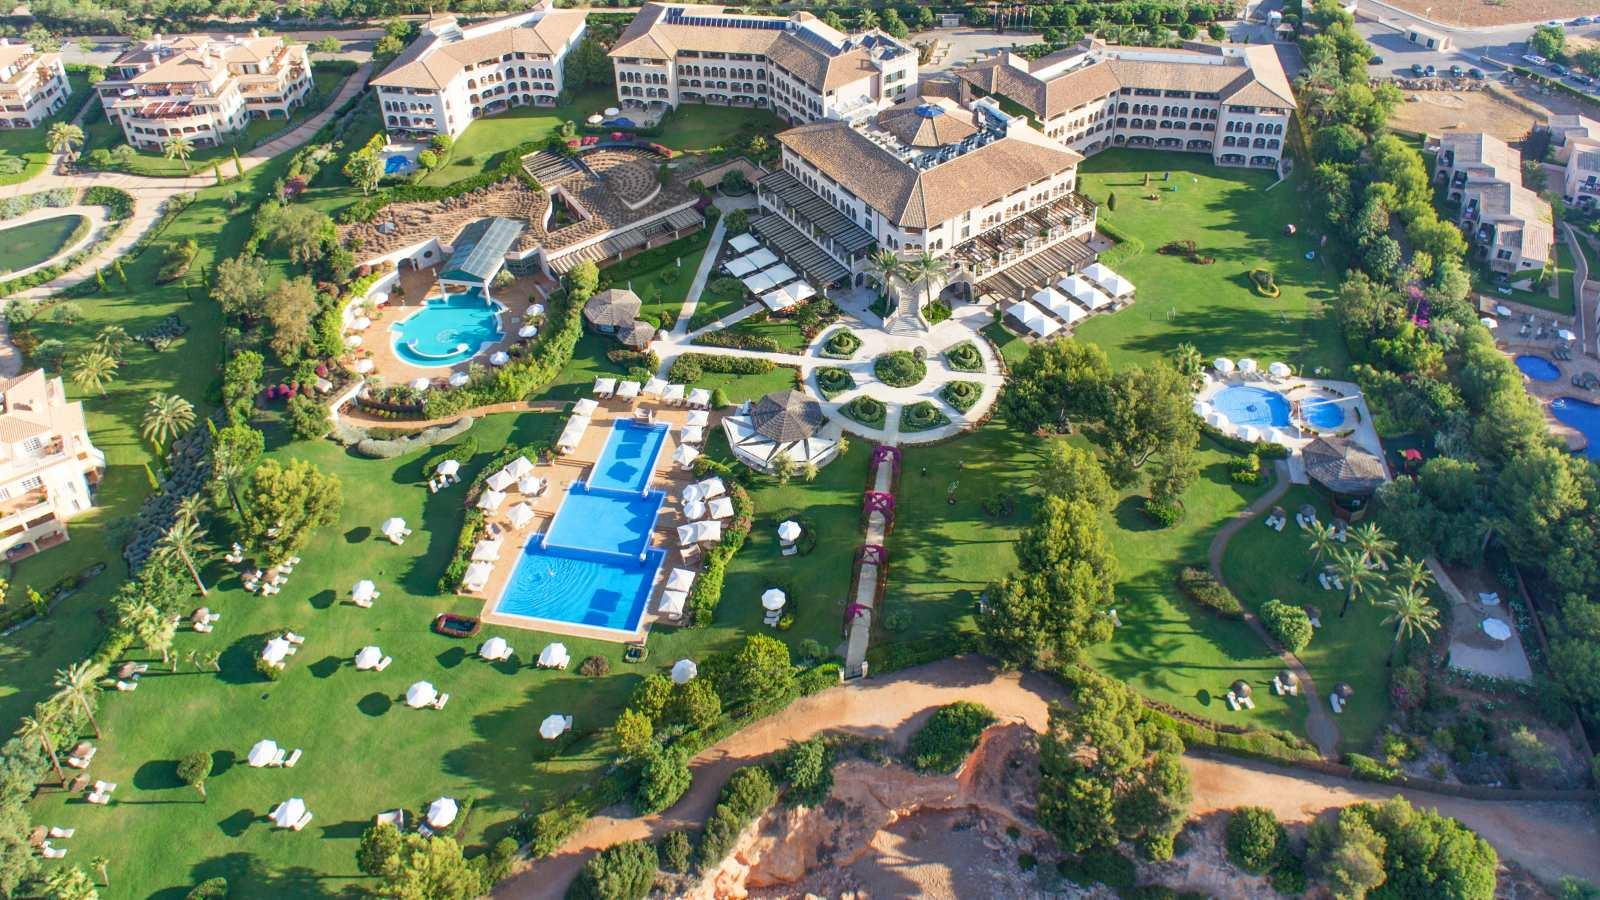 Holidays at St Regis Mardavall Resort Hotel in Costa d'en Blanes, Majorca